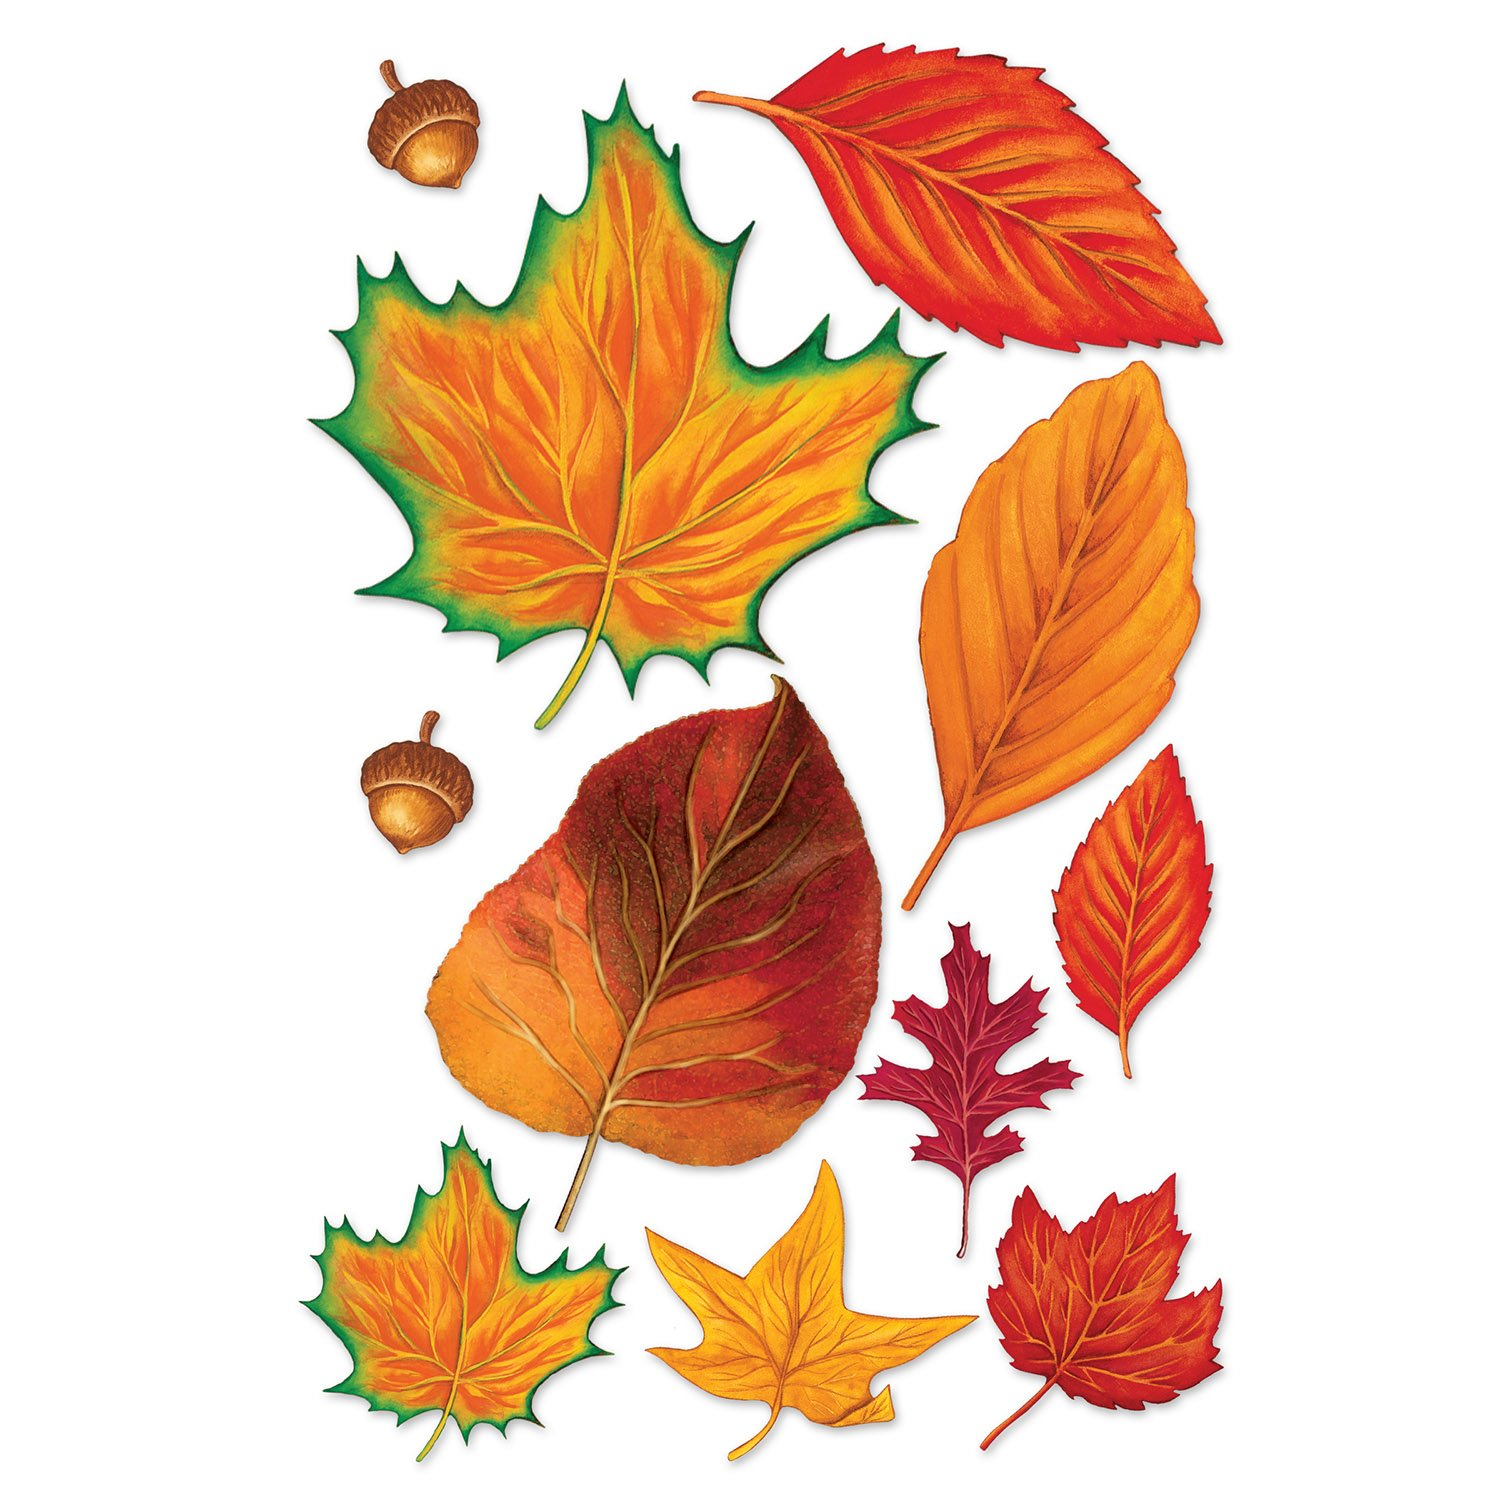 Beistle 99097 Fall Leaf Cutouts, 2.25''-12'', 11 Cutouts In Package